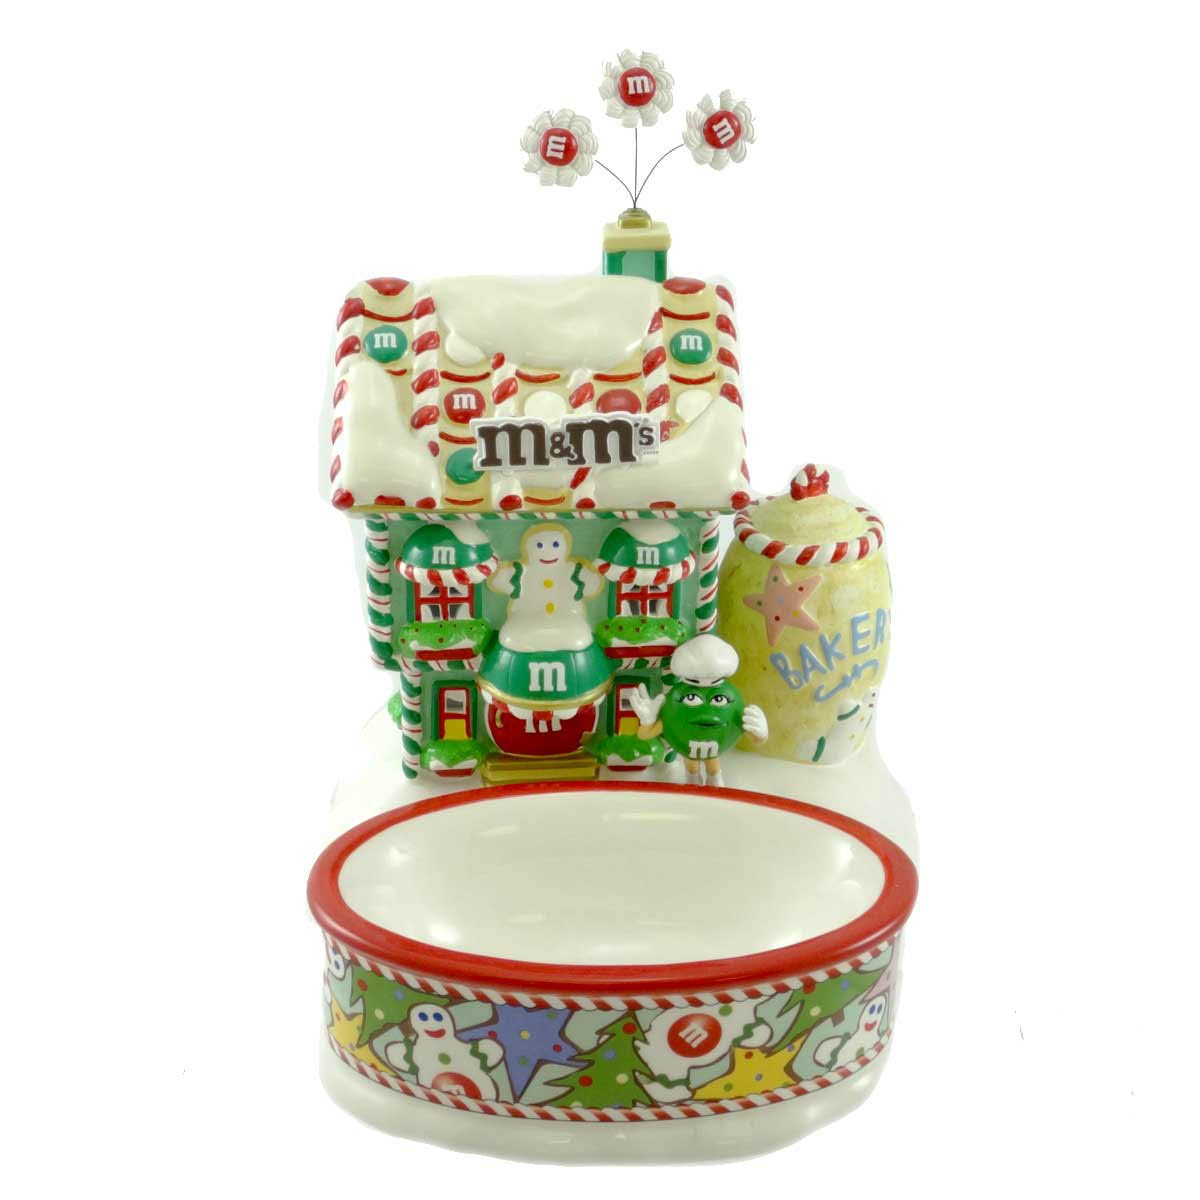 Dept 56 Accessories Christmas Bakery W/ Candy Dish Explore The New World M&Ms - Ceramic 6.50 IN